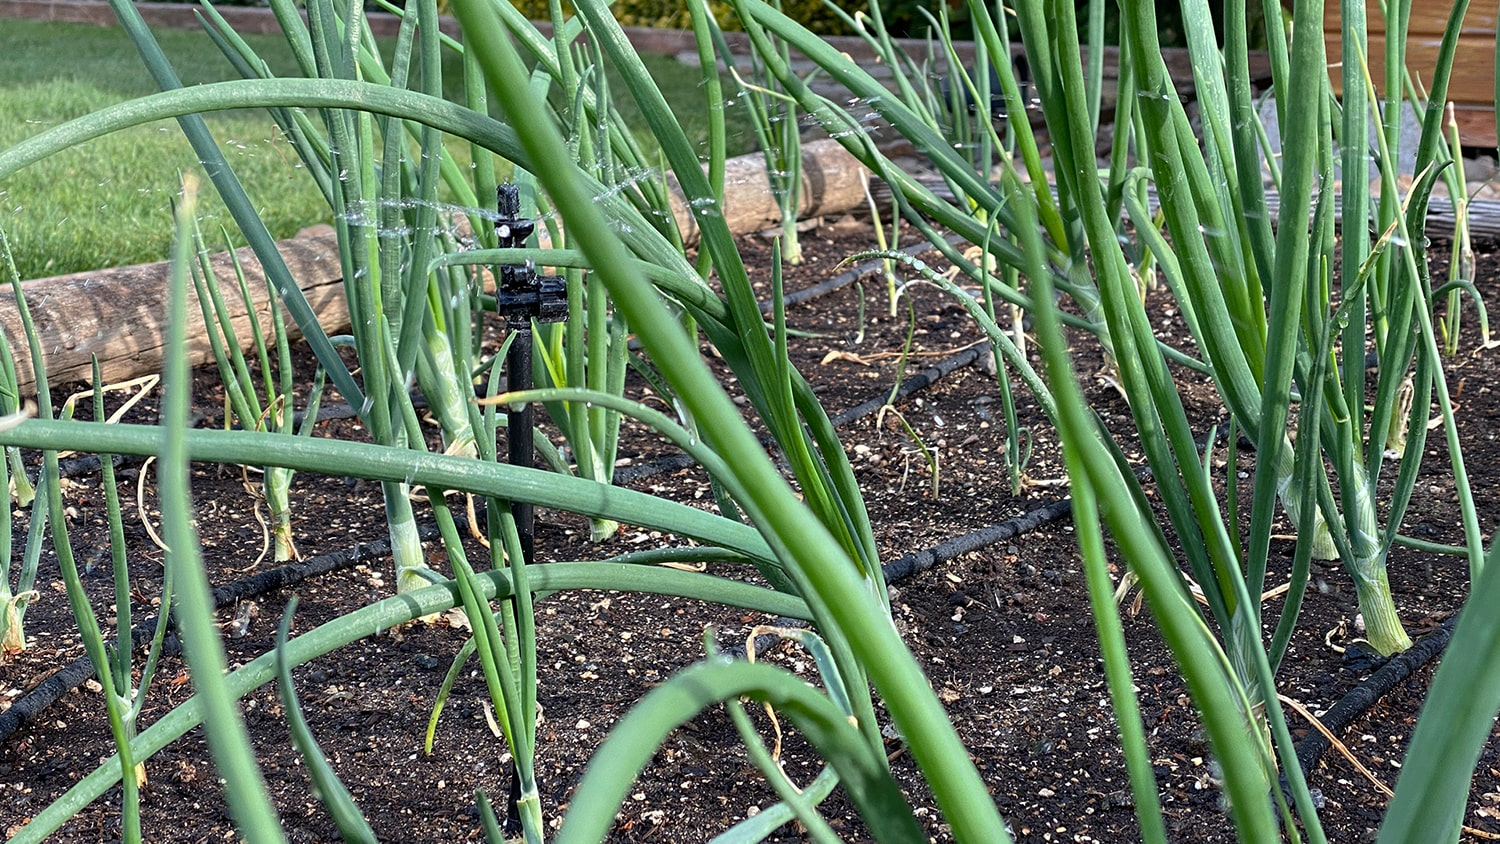 Keeping Plants Healthy in the Heat Blog - Growing Onions